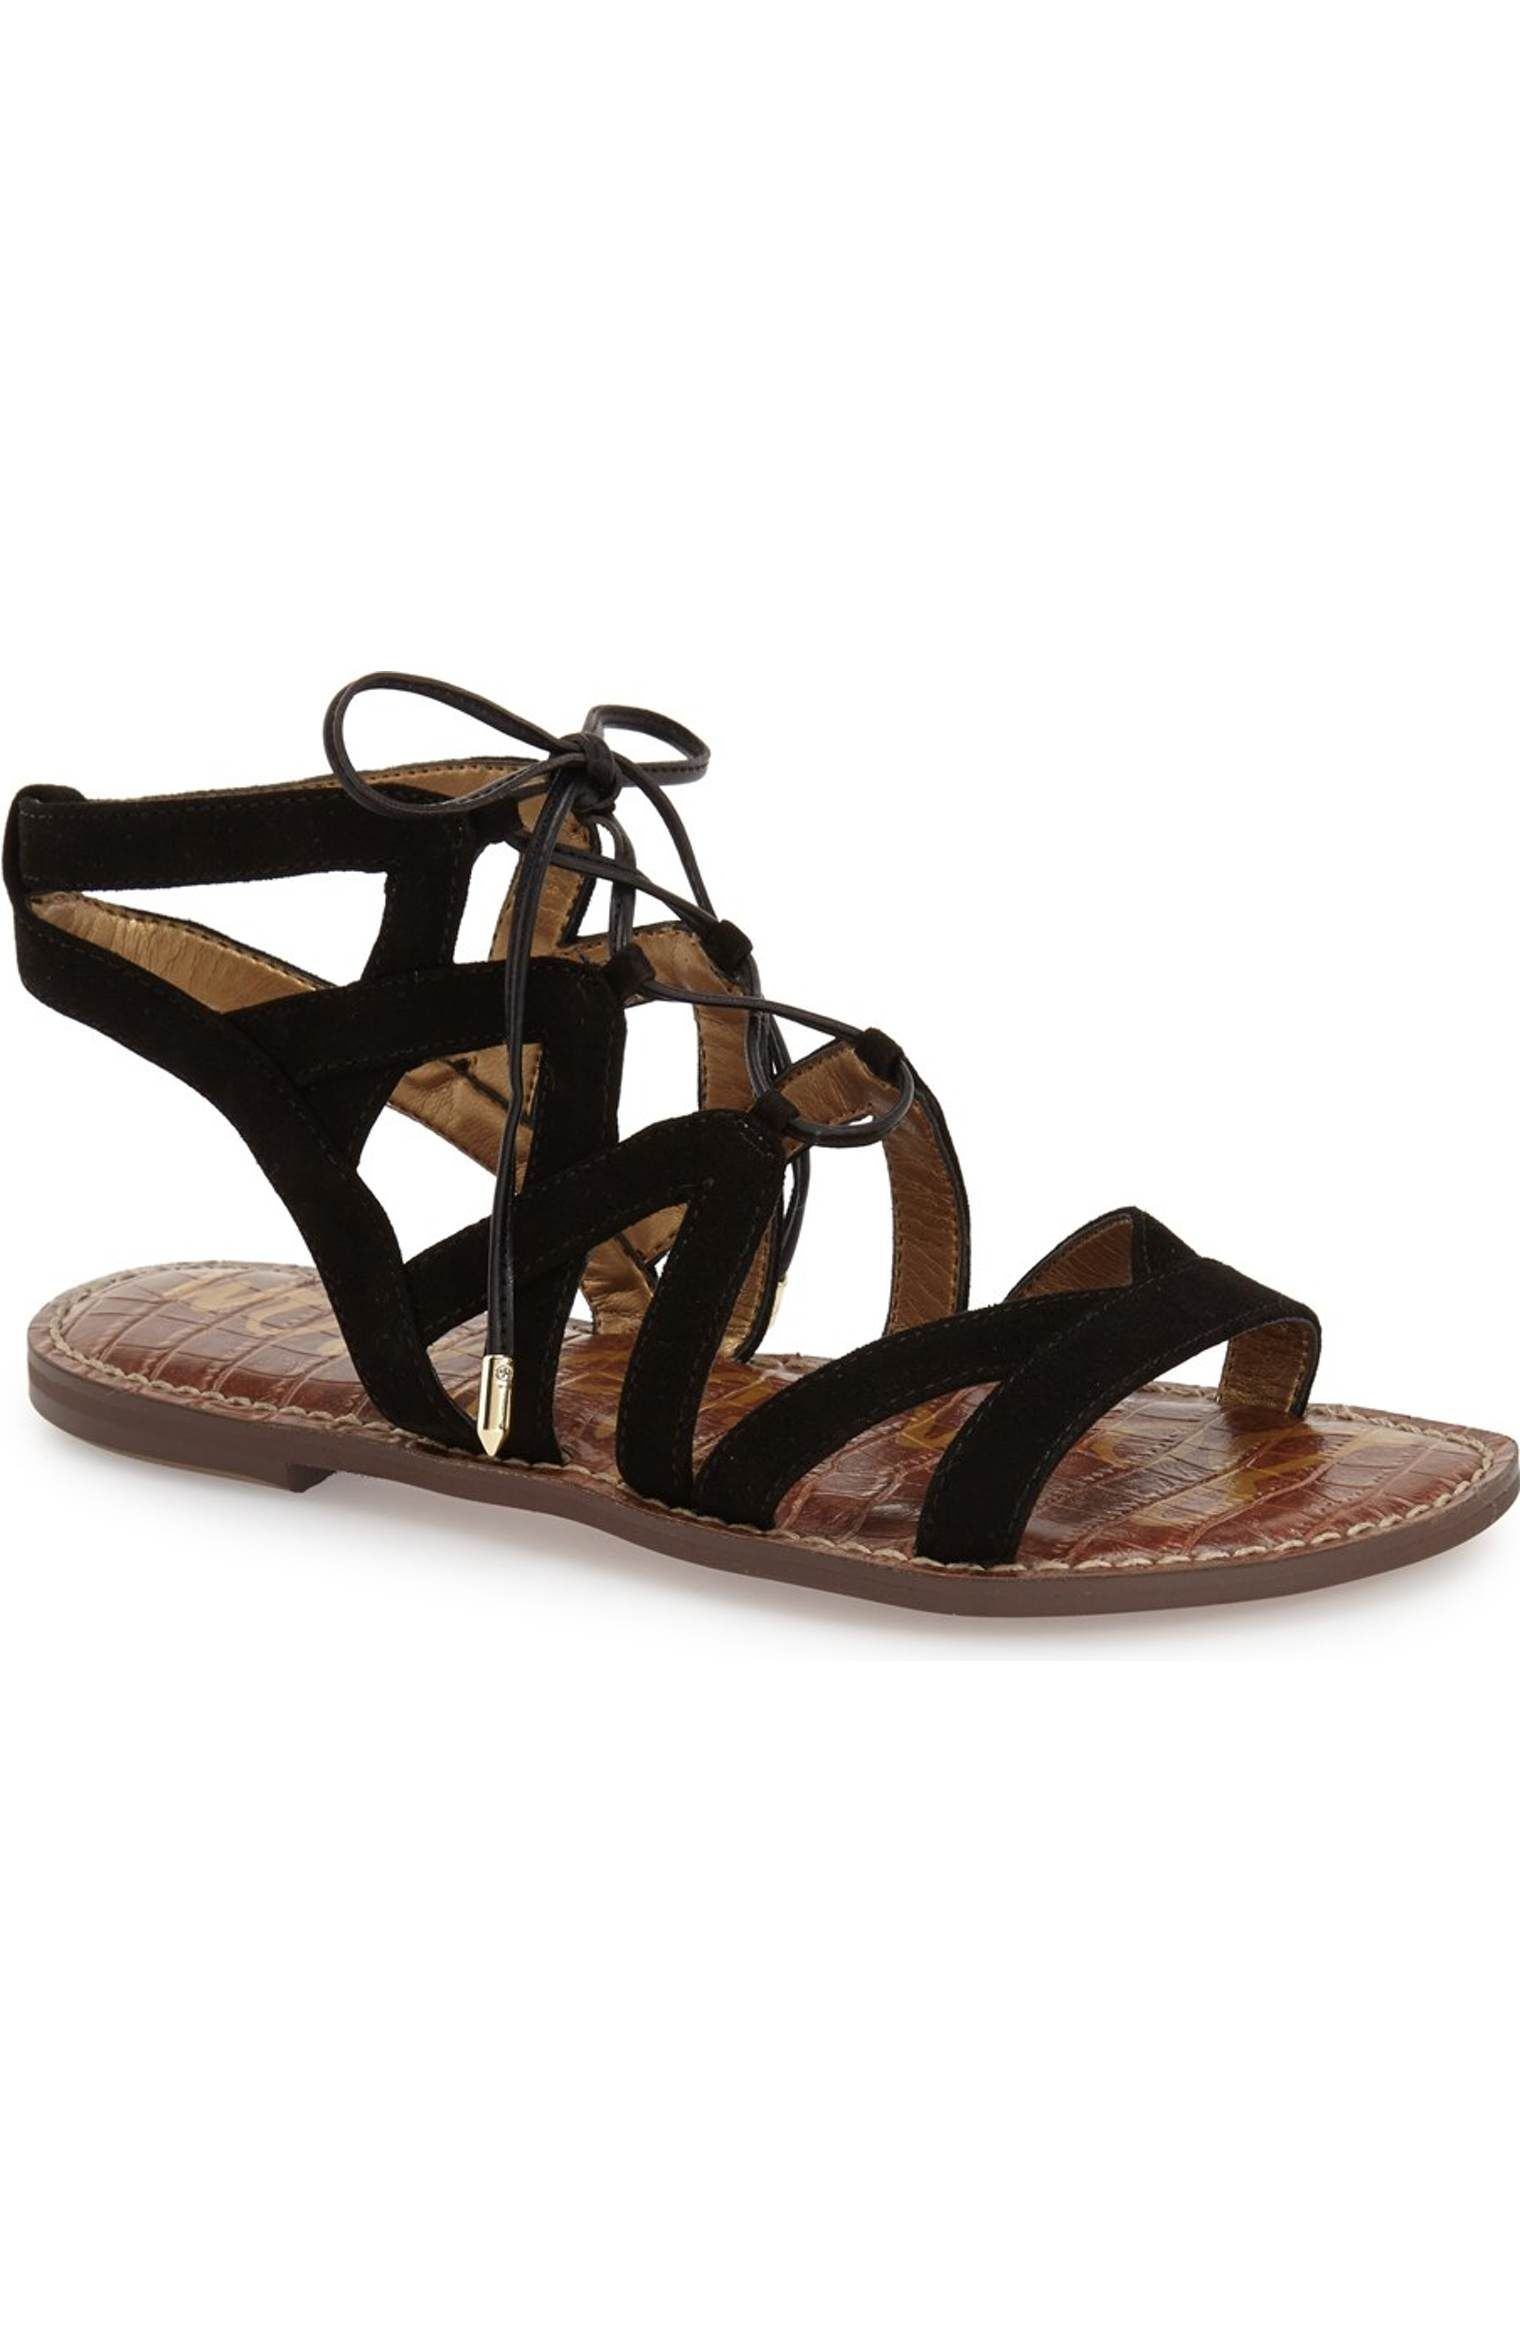 af72859dcc4ecc Main Image - Sam Edelman  Gemma  Lace-Up Sandal (Women)